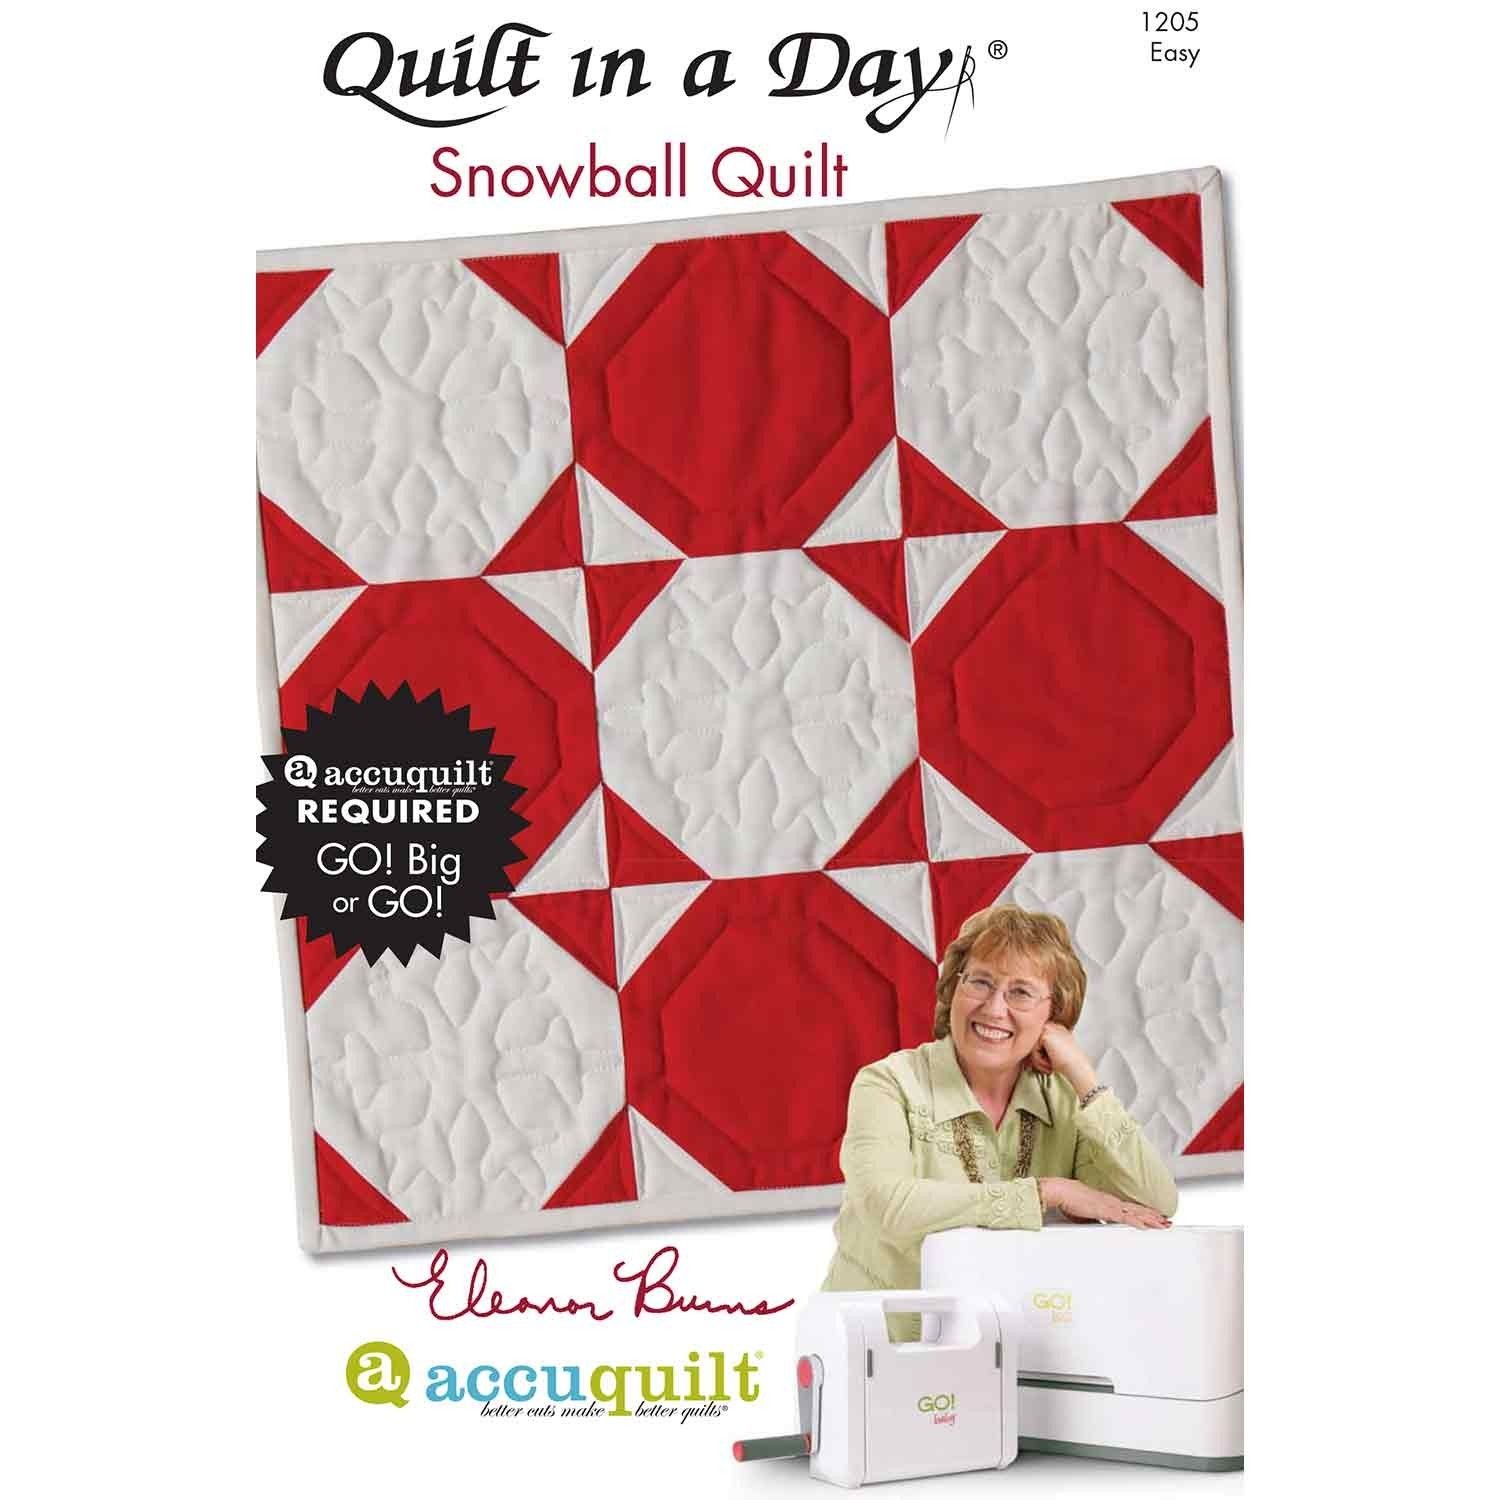 Get a FREE Eleanor Burns Pattern | Quilting | Pinterest | Snowball ... : quilt in a day patterns free - Adamdwight.com